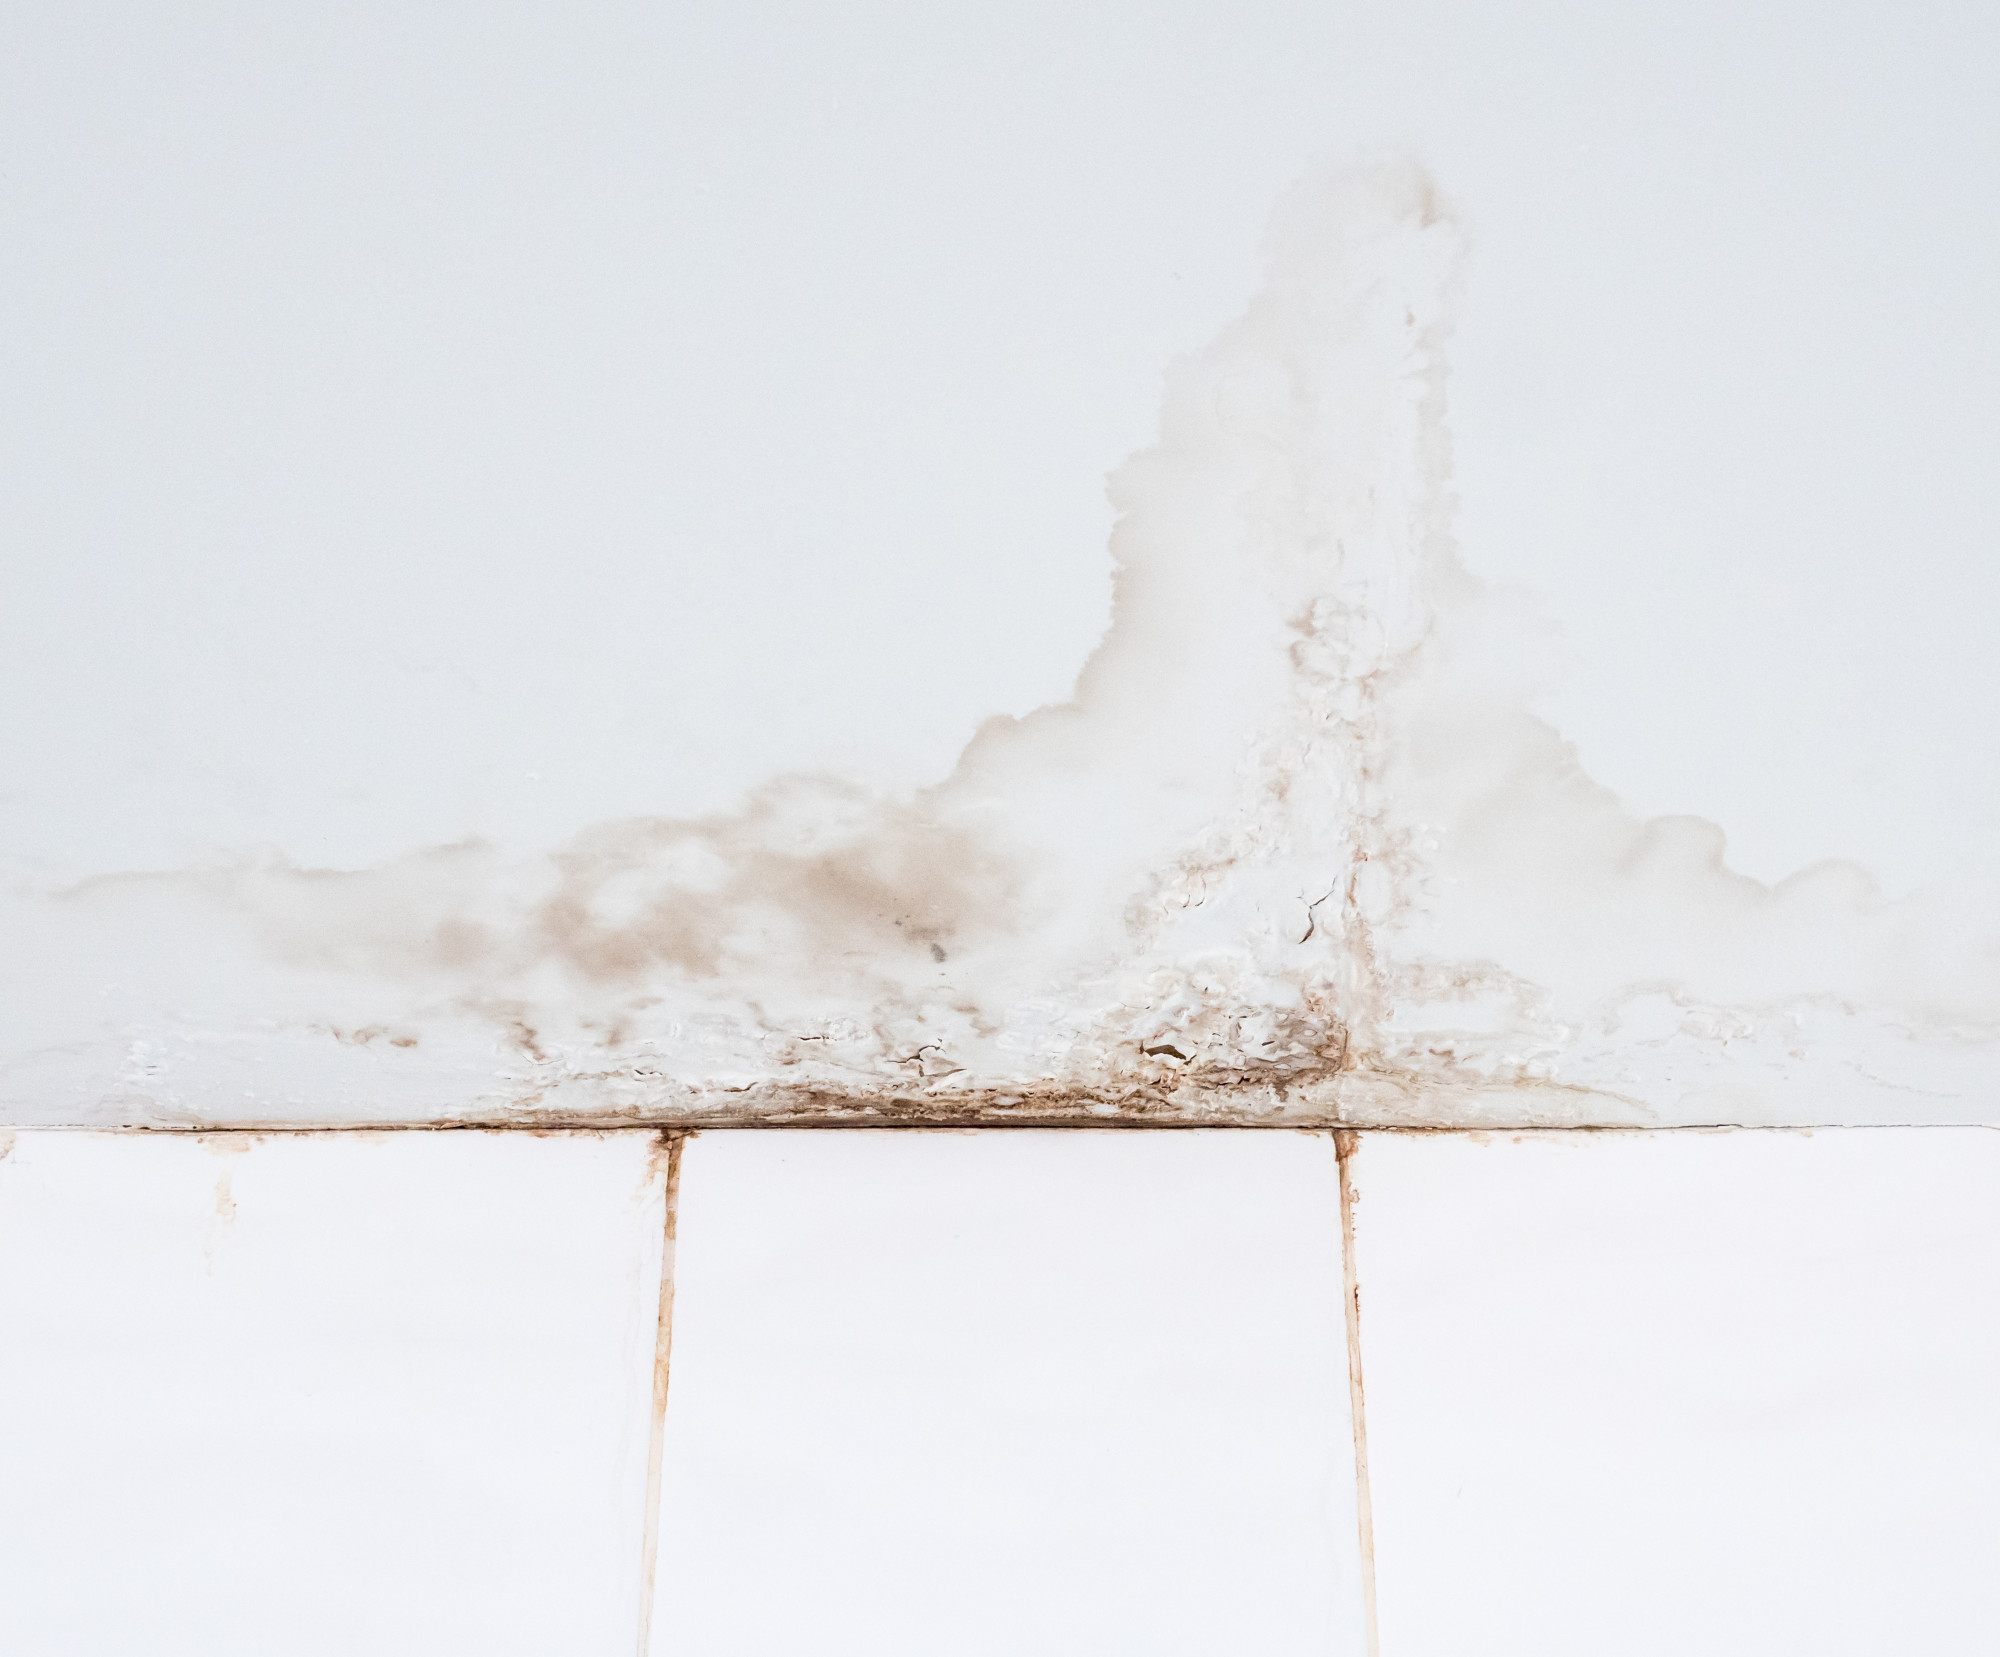 water stain on drywall ceiling